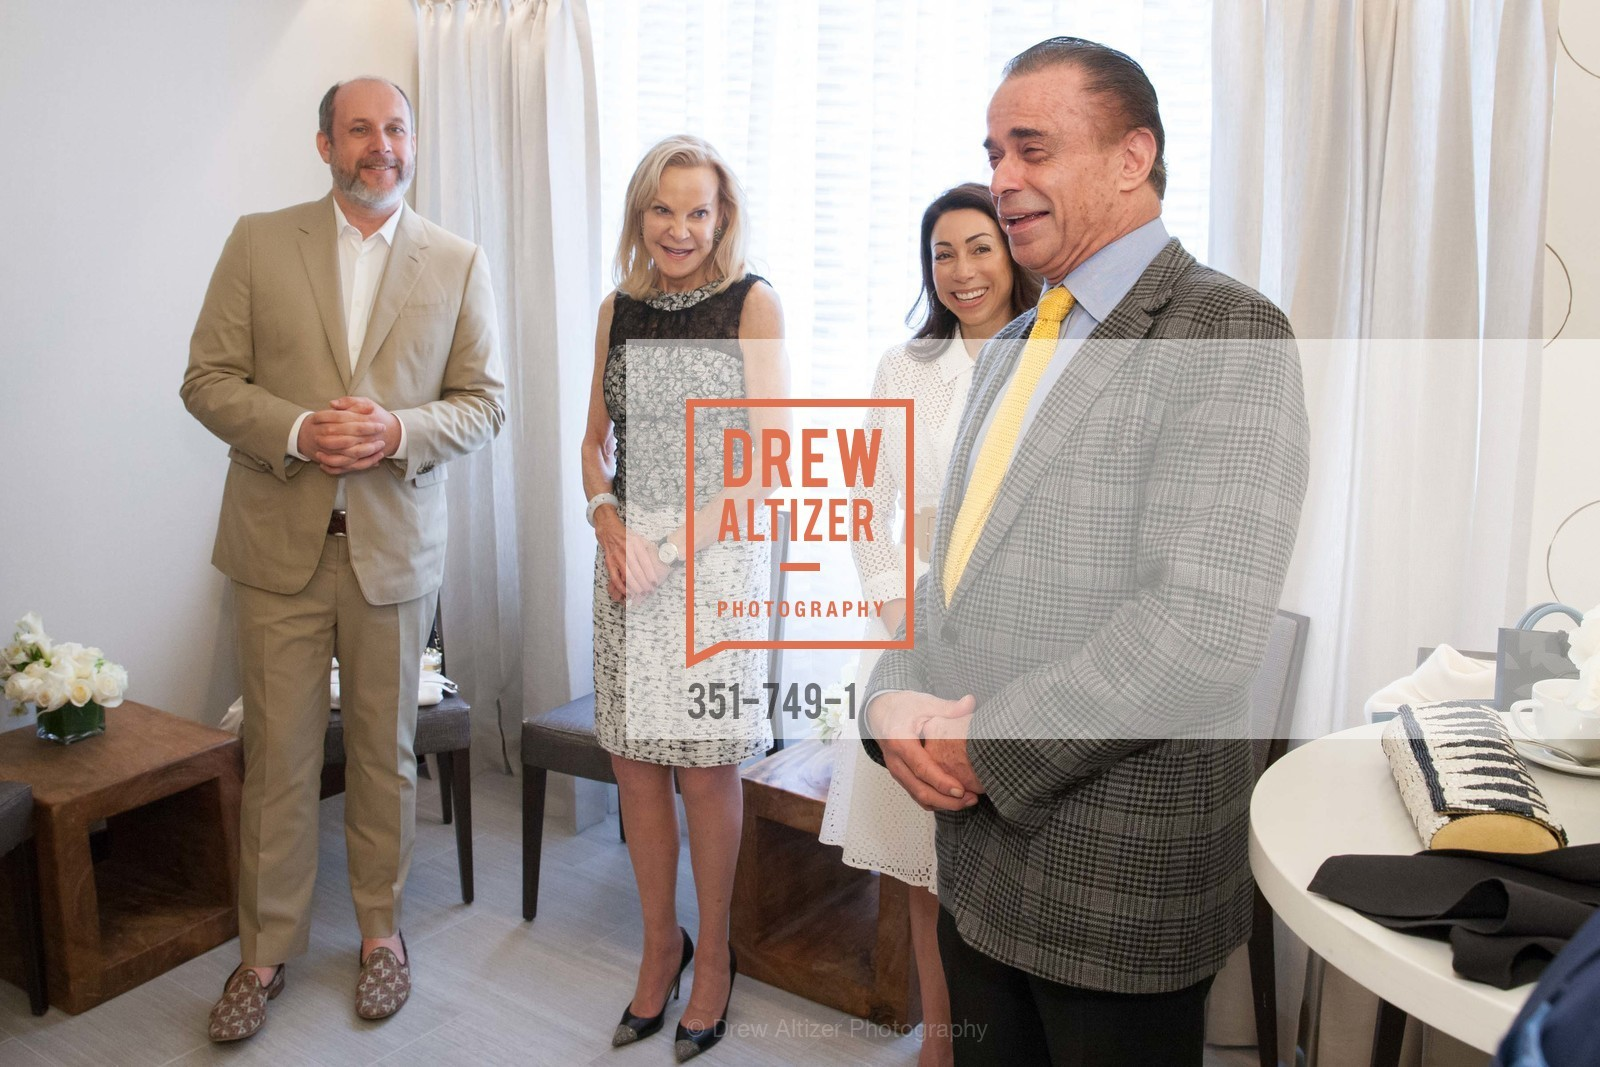 Peter Copping, Carole McNeil, Gina Peterson, Boaz Mazor, PETER COPPING Meets and Greets OSCAR DELA RENTA Clients and Associates at NEIMAN MARCUS, US, May 23rd, 2015,Drew Altizer, Drew Altizer Photography, full-service agency, private events, San Francisco photographer, photographer california